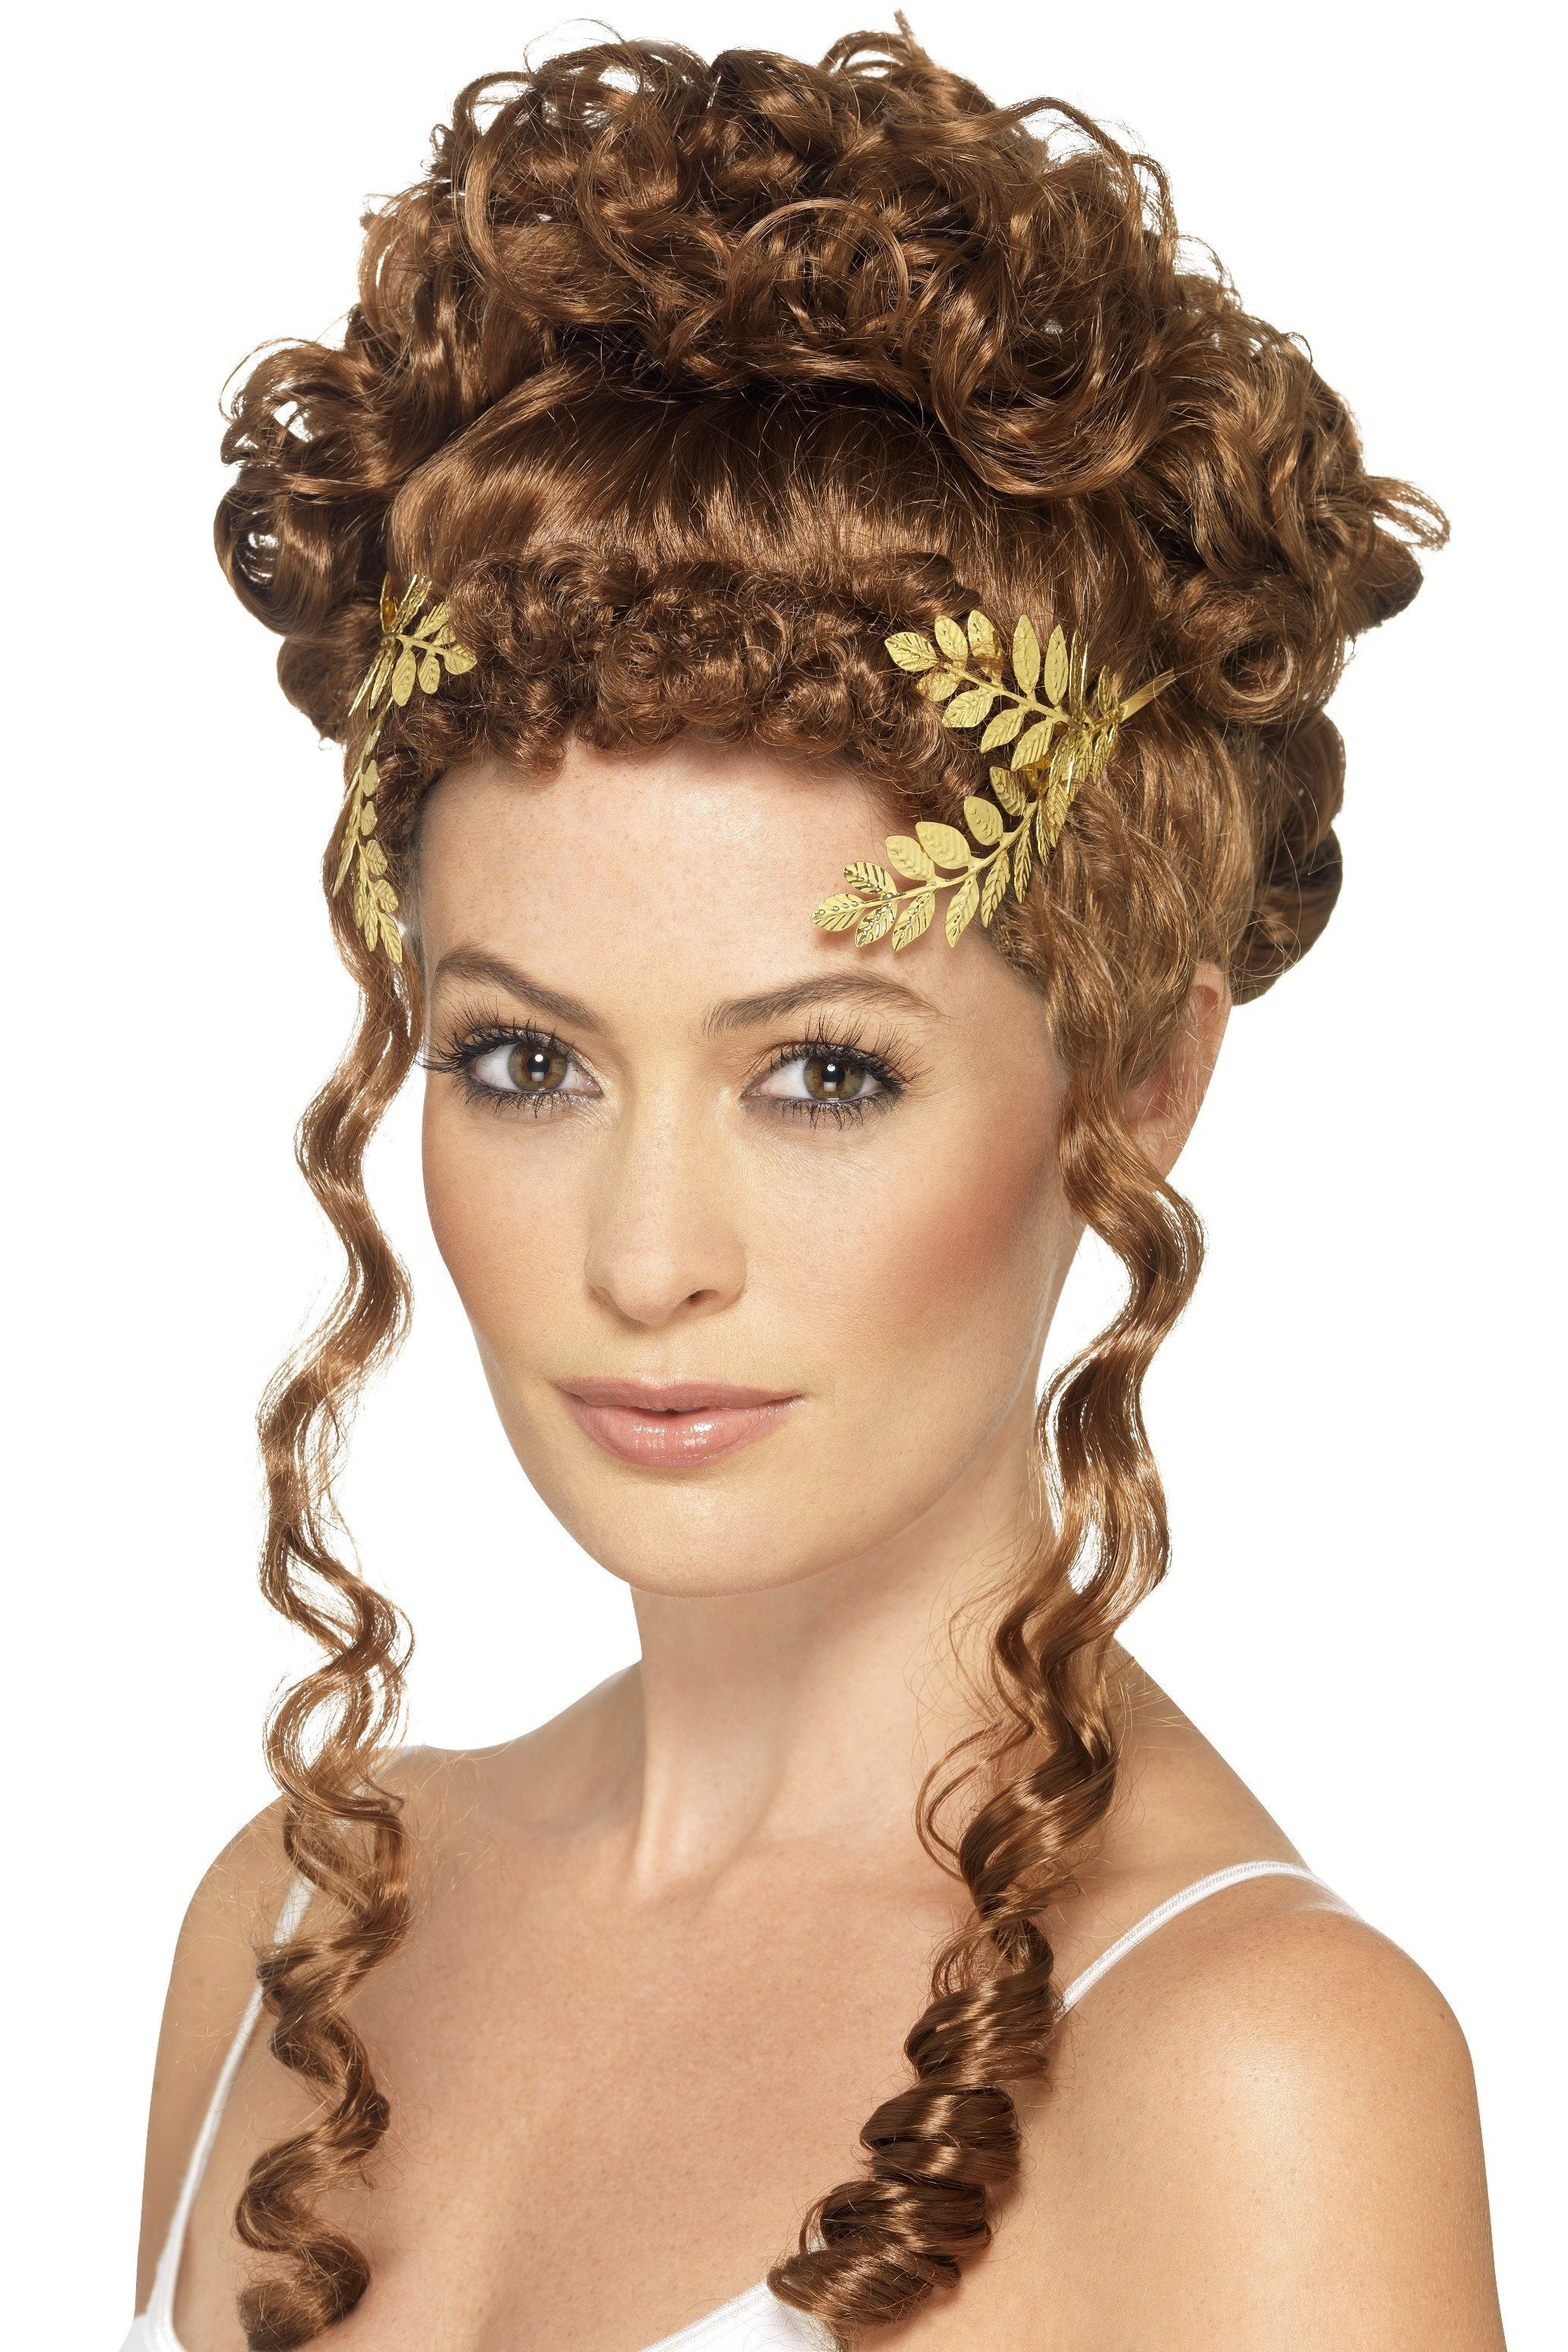 Gold Laurel Leaf Toga Goddess Headband.jpg v 1530271505 bf9c96a2a88